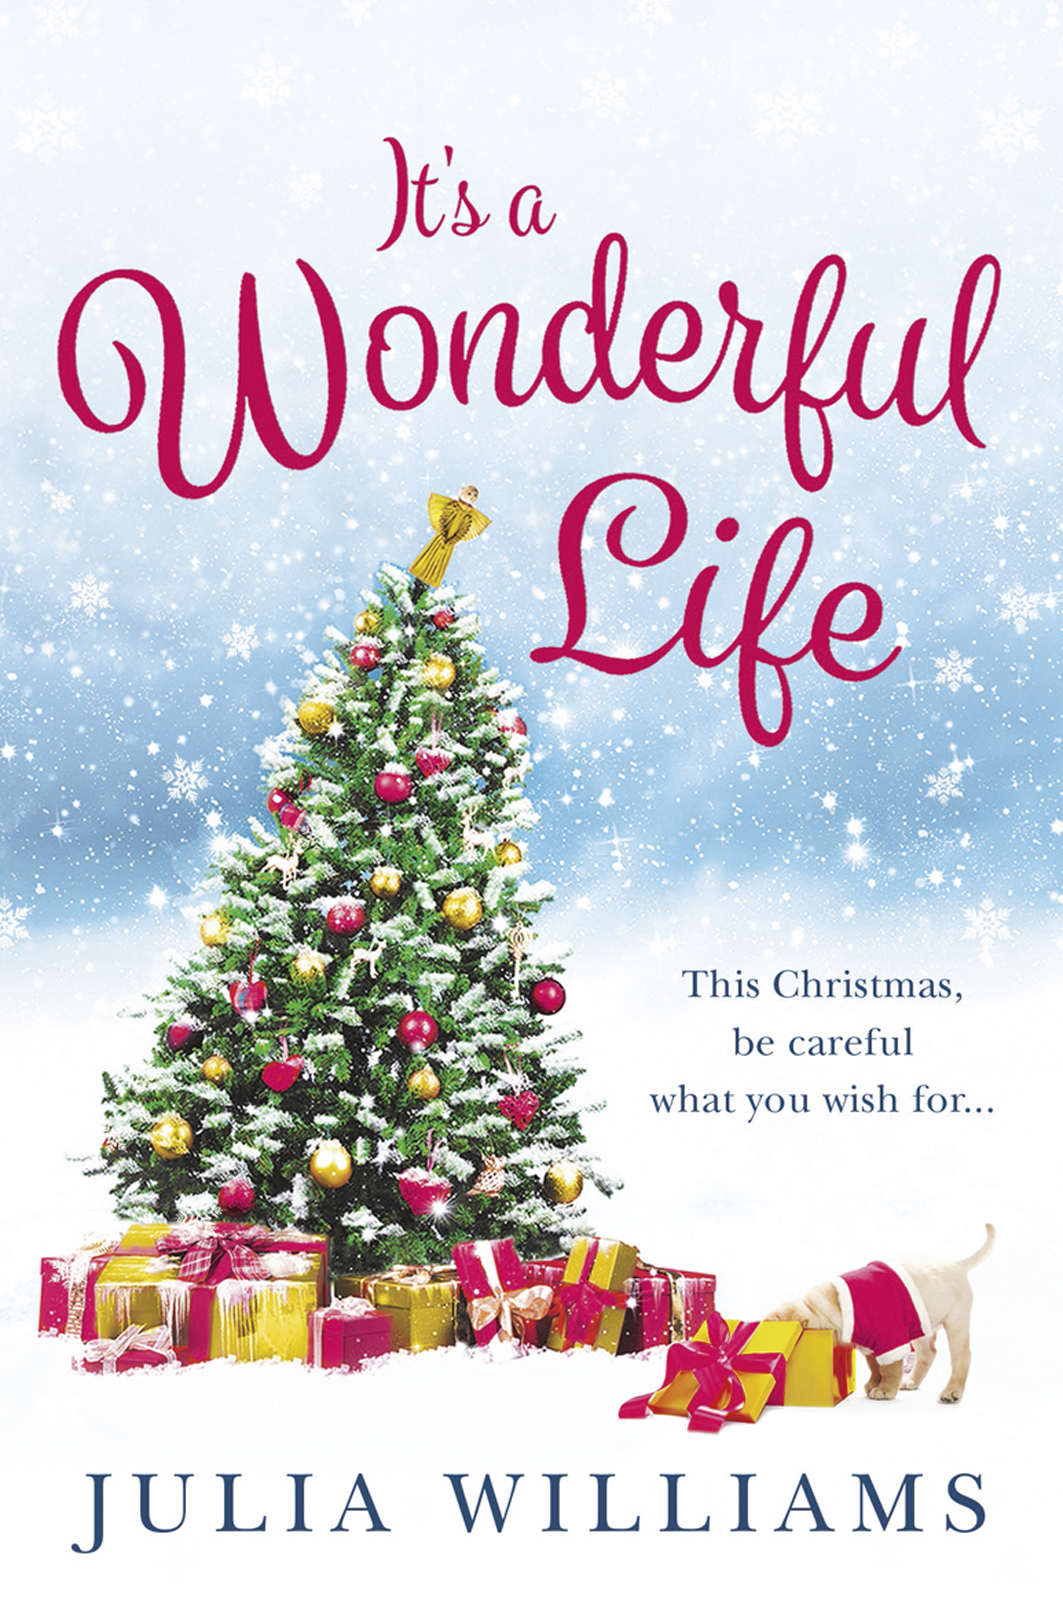 Julia Williams It's a Wonderful Life: The Christmas bestseller is back with an unforgettable holiday romance greg behrendt it's called a breakup because it's broken the smart girl's breakup buddy